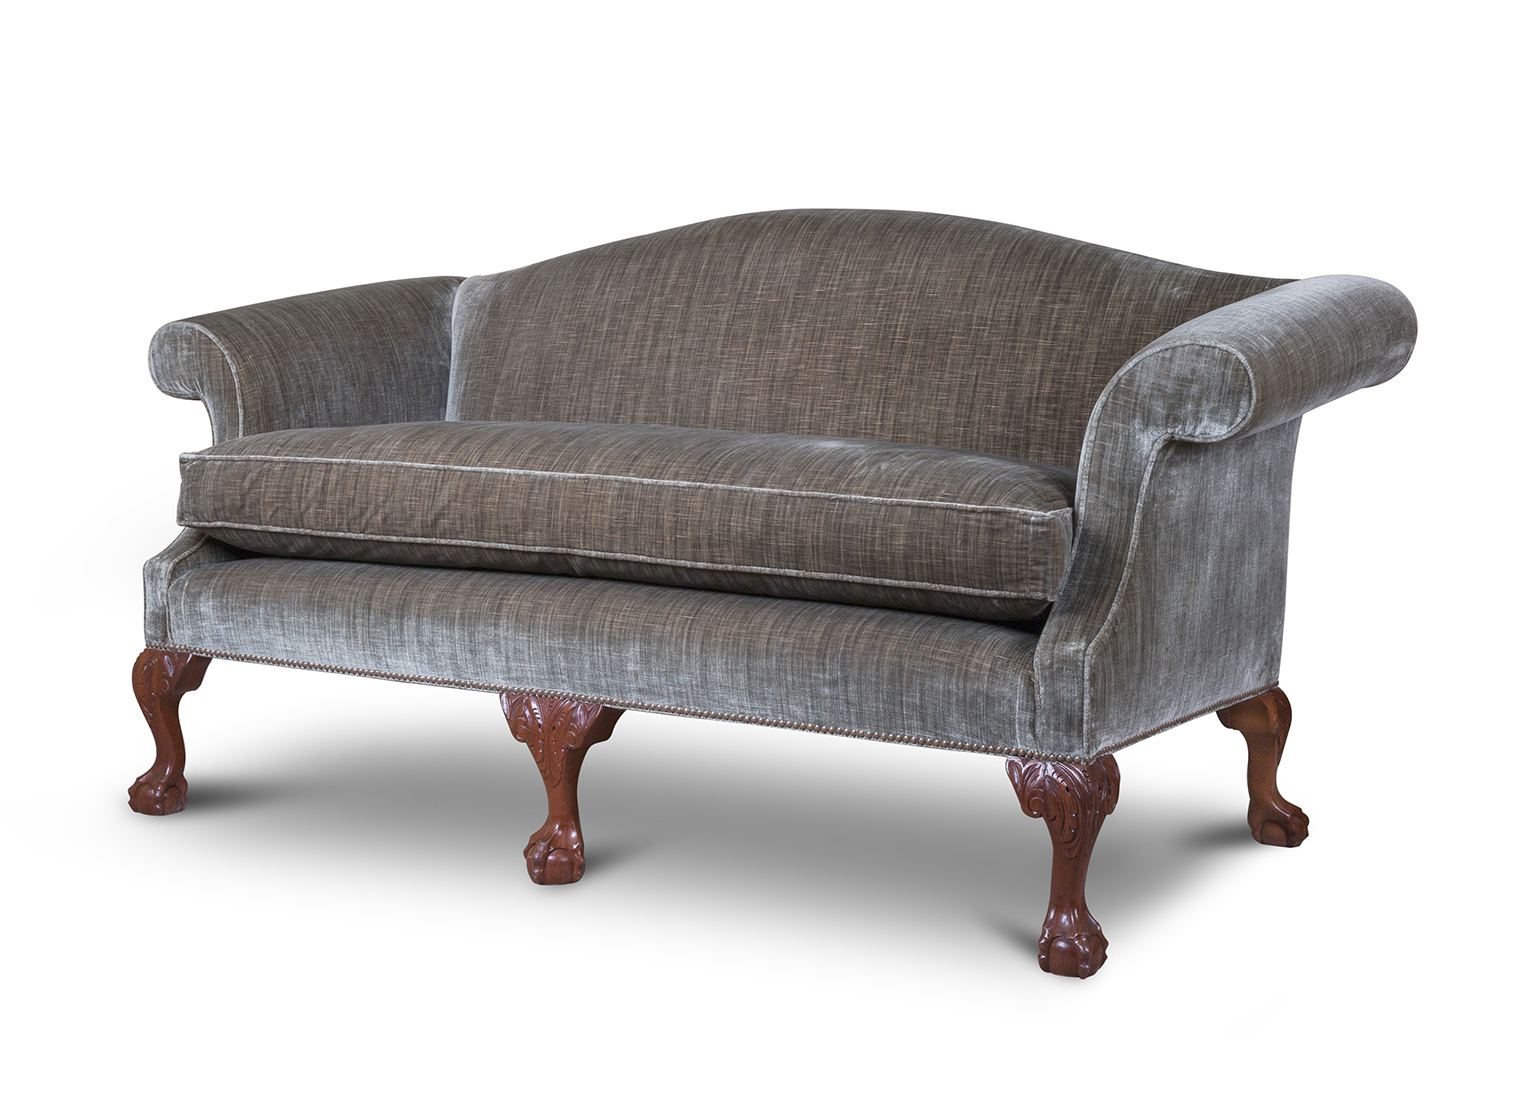 Congreve Sofa Sofas Furniture Beaumont Fletcher - Lydia 2 Seater Sofa